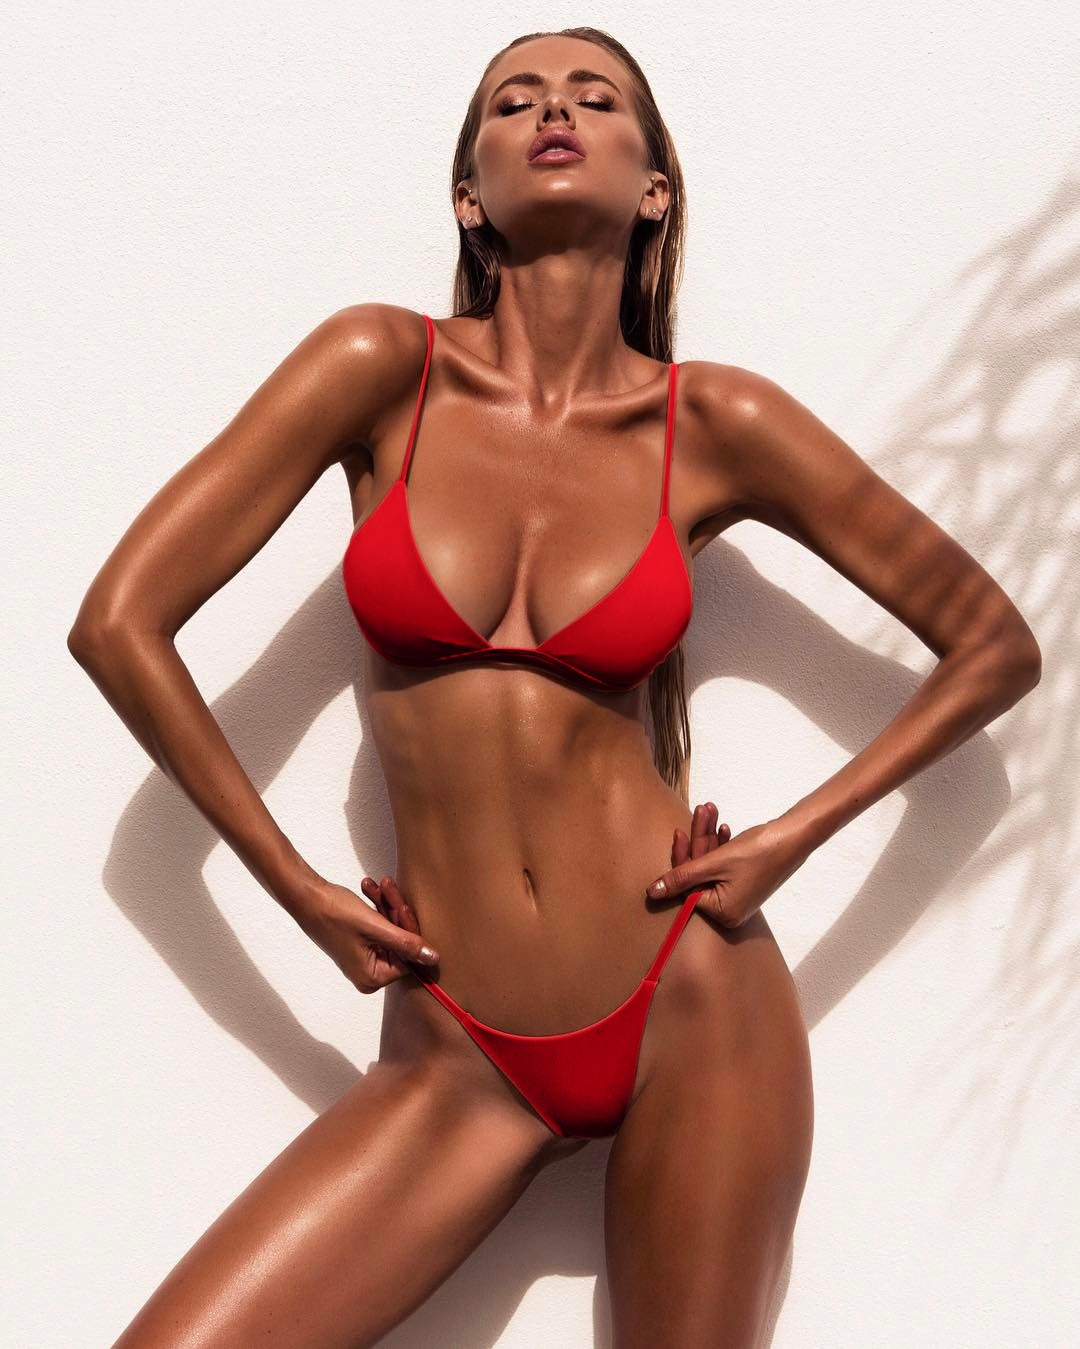 Summmer Solid Color Bikini Set 2021 Sexy Red Swimwear Women Brazilian Swimsuit Low Waist Biquini Halter Two Pieces Bathing Suit